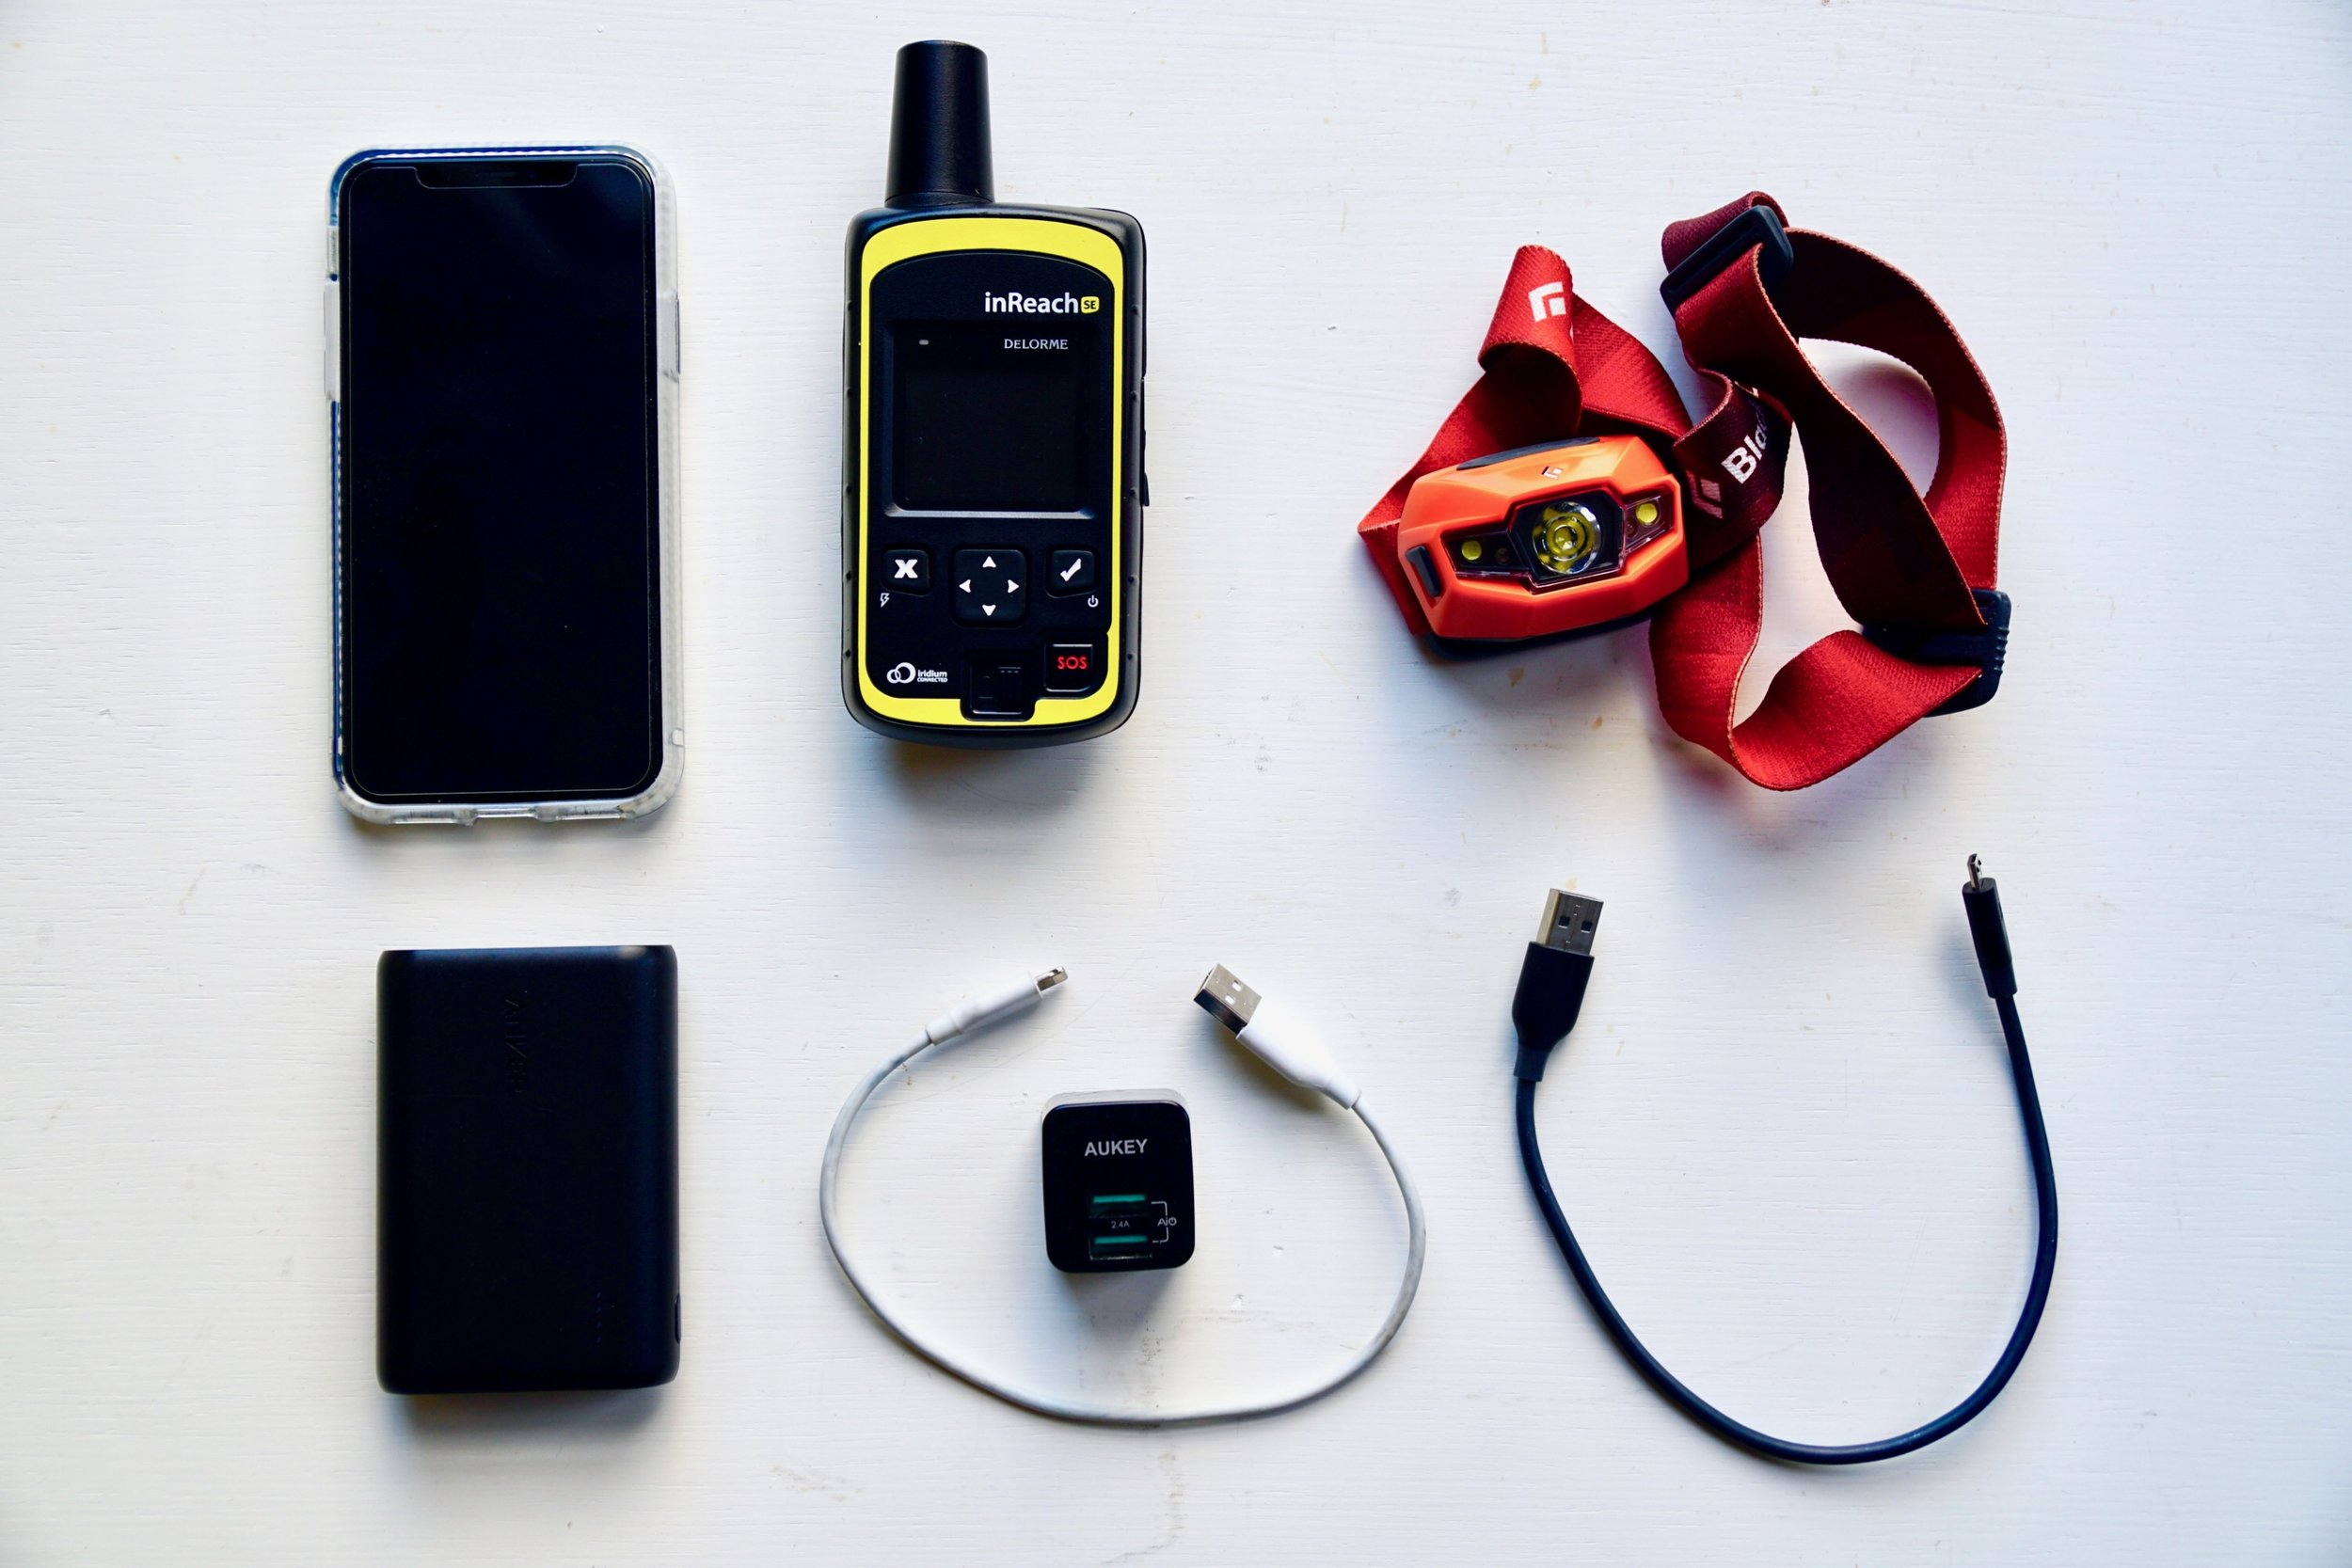 Electronics and communication : iPhone, InReach for emergencies, Black Diamond Revolt USB rechargable headlamp, Anker 10,000 mAh battery, charging cables and plug.